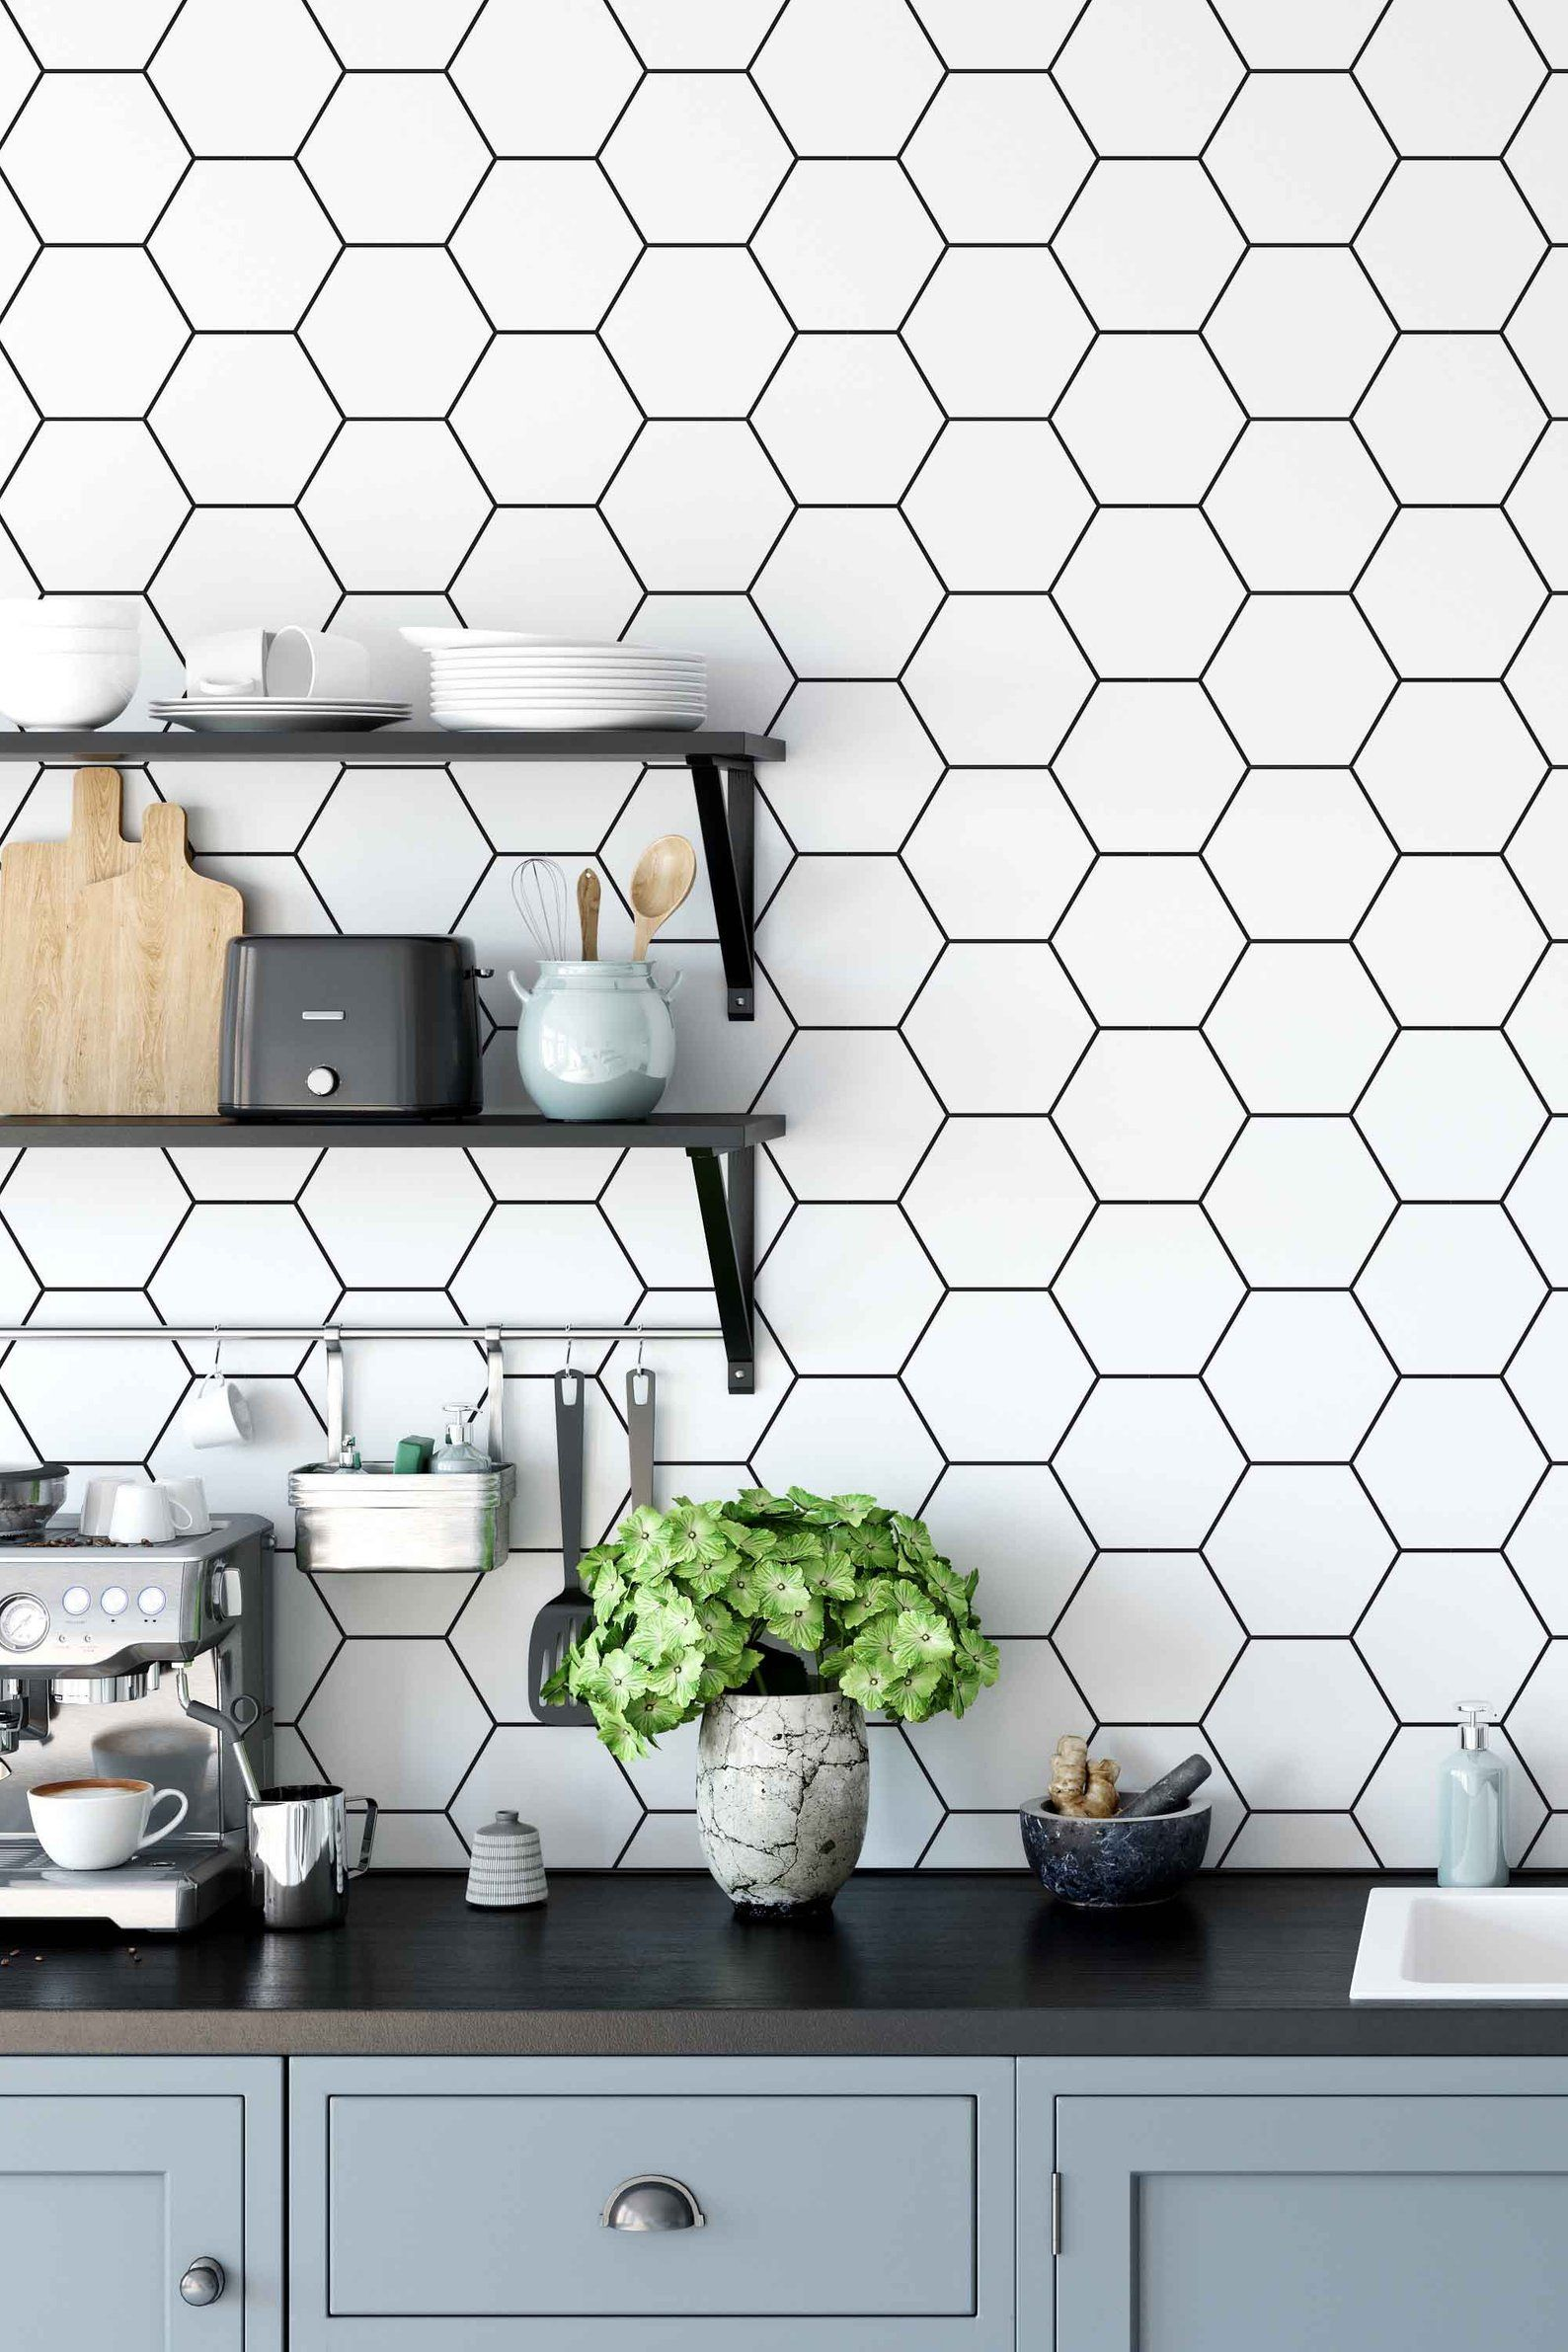 - Peel And Stick Wallpaper With Honeycomb Pattern, Black And White